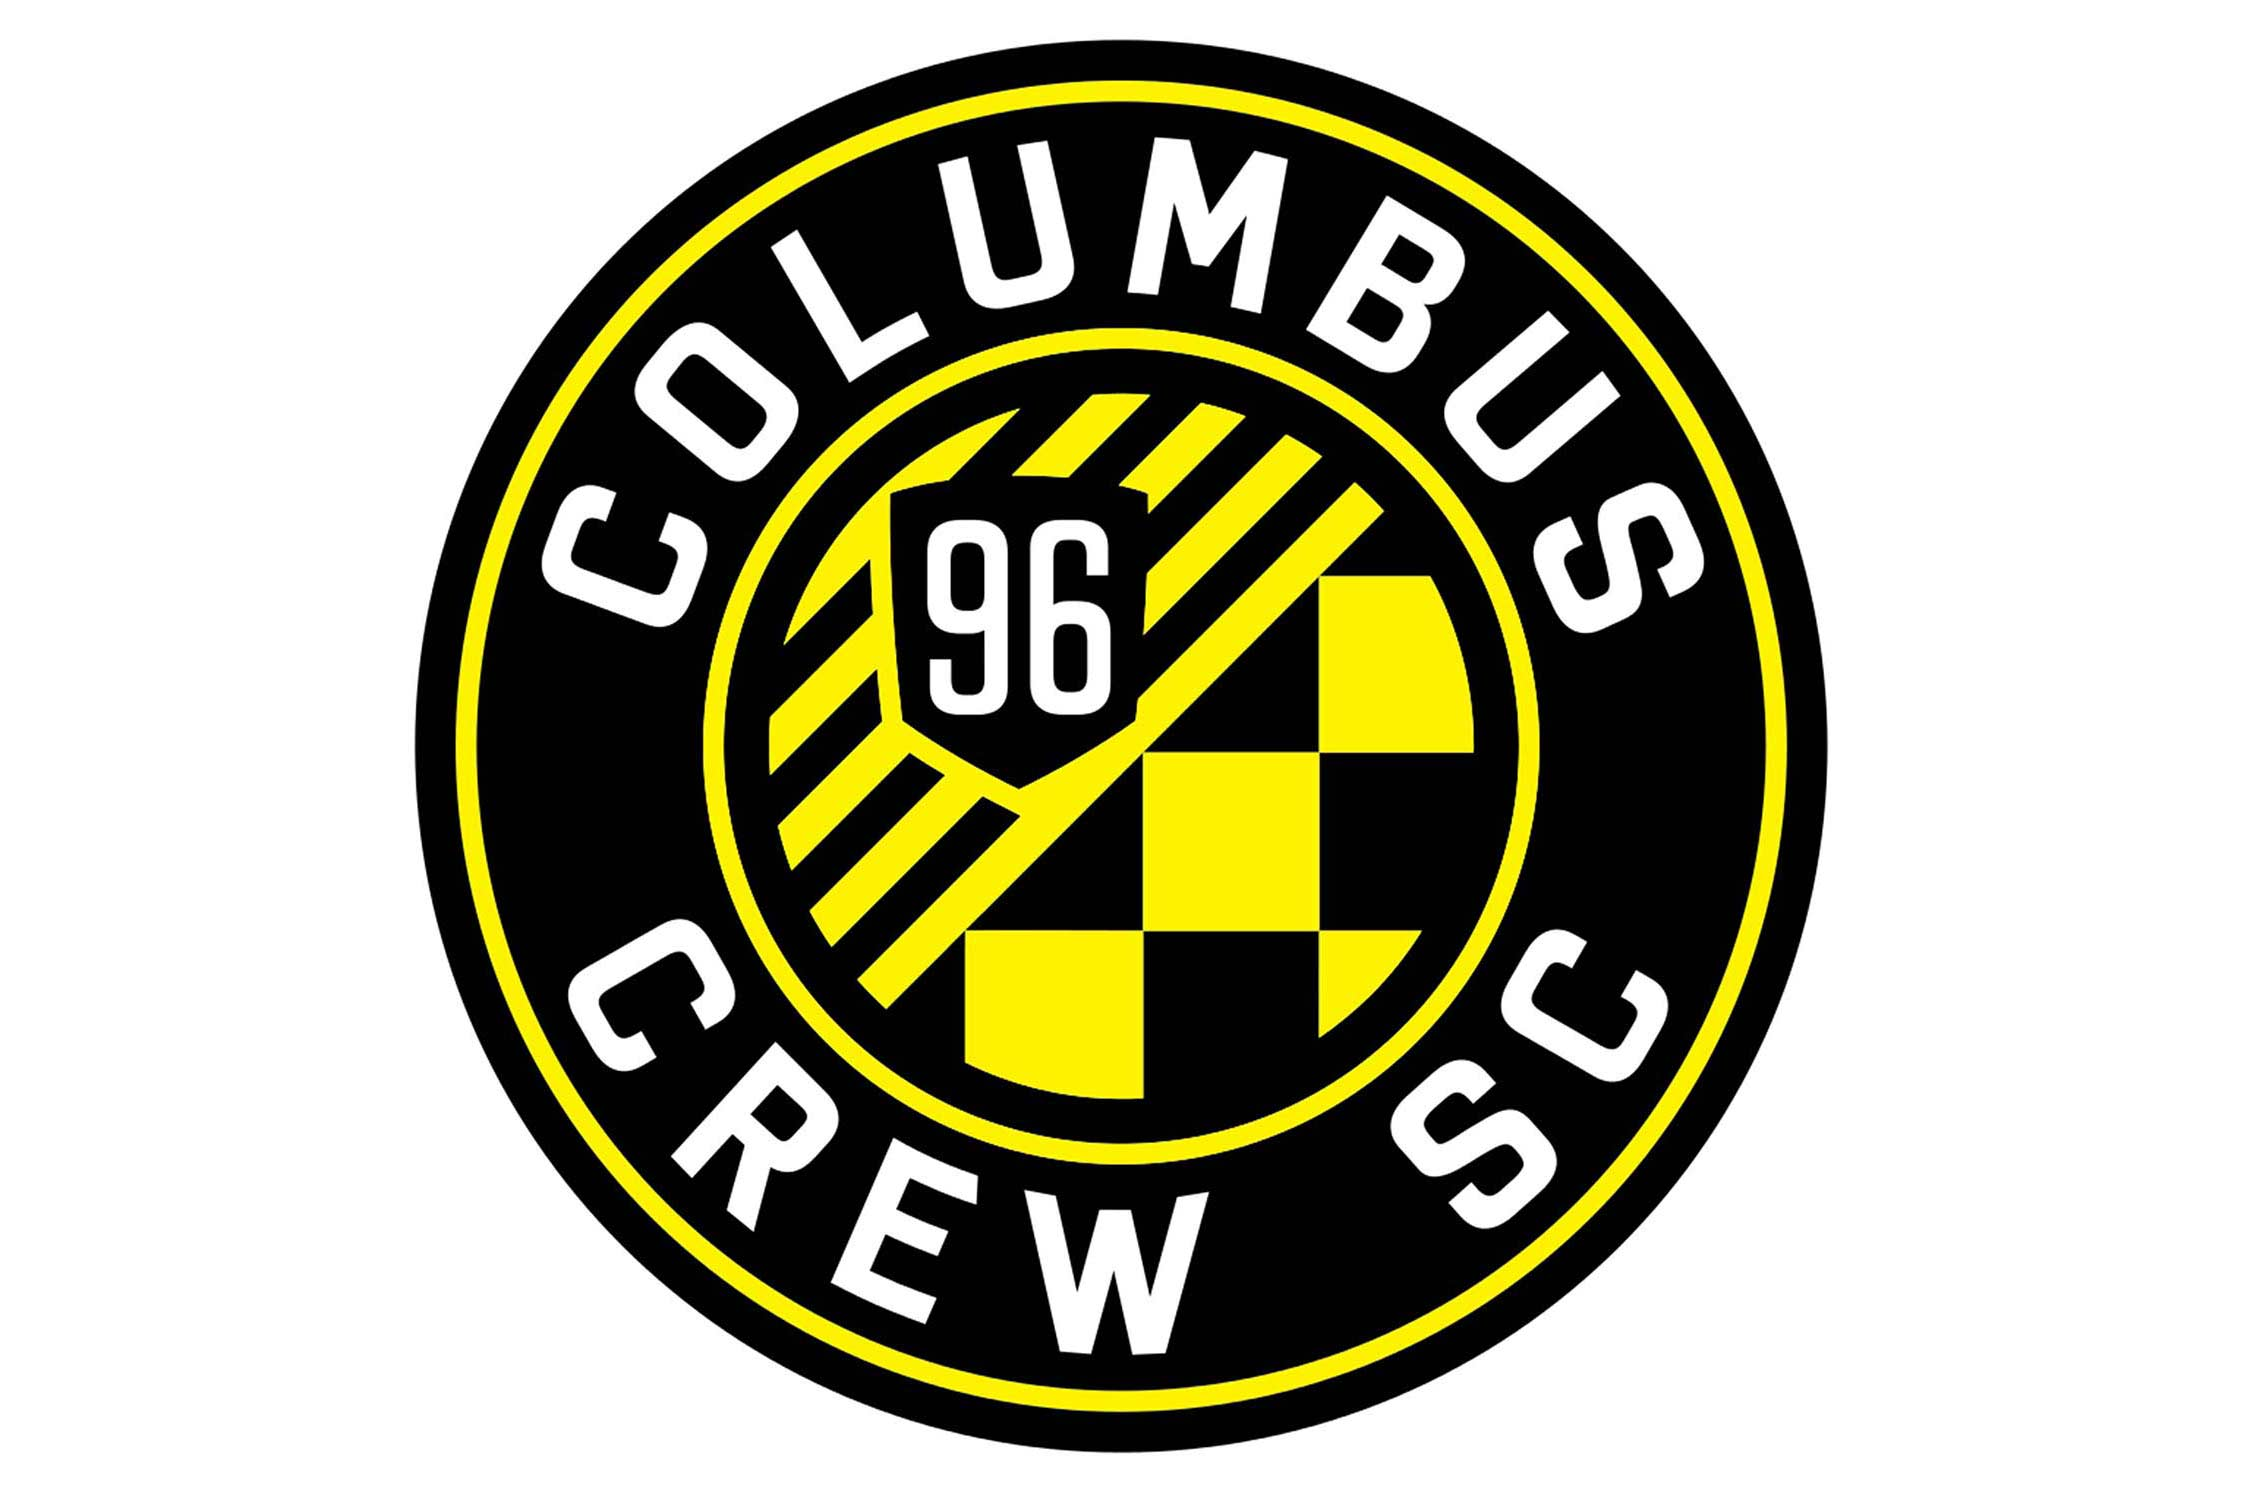 One of MLS' founding clubs, Crew SC re-made its logo in 2014.